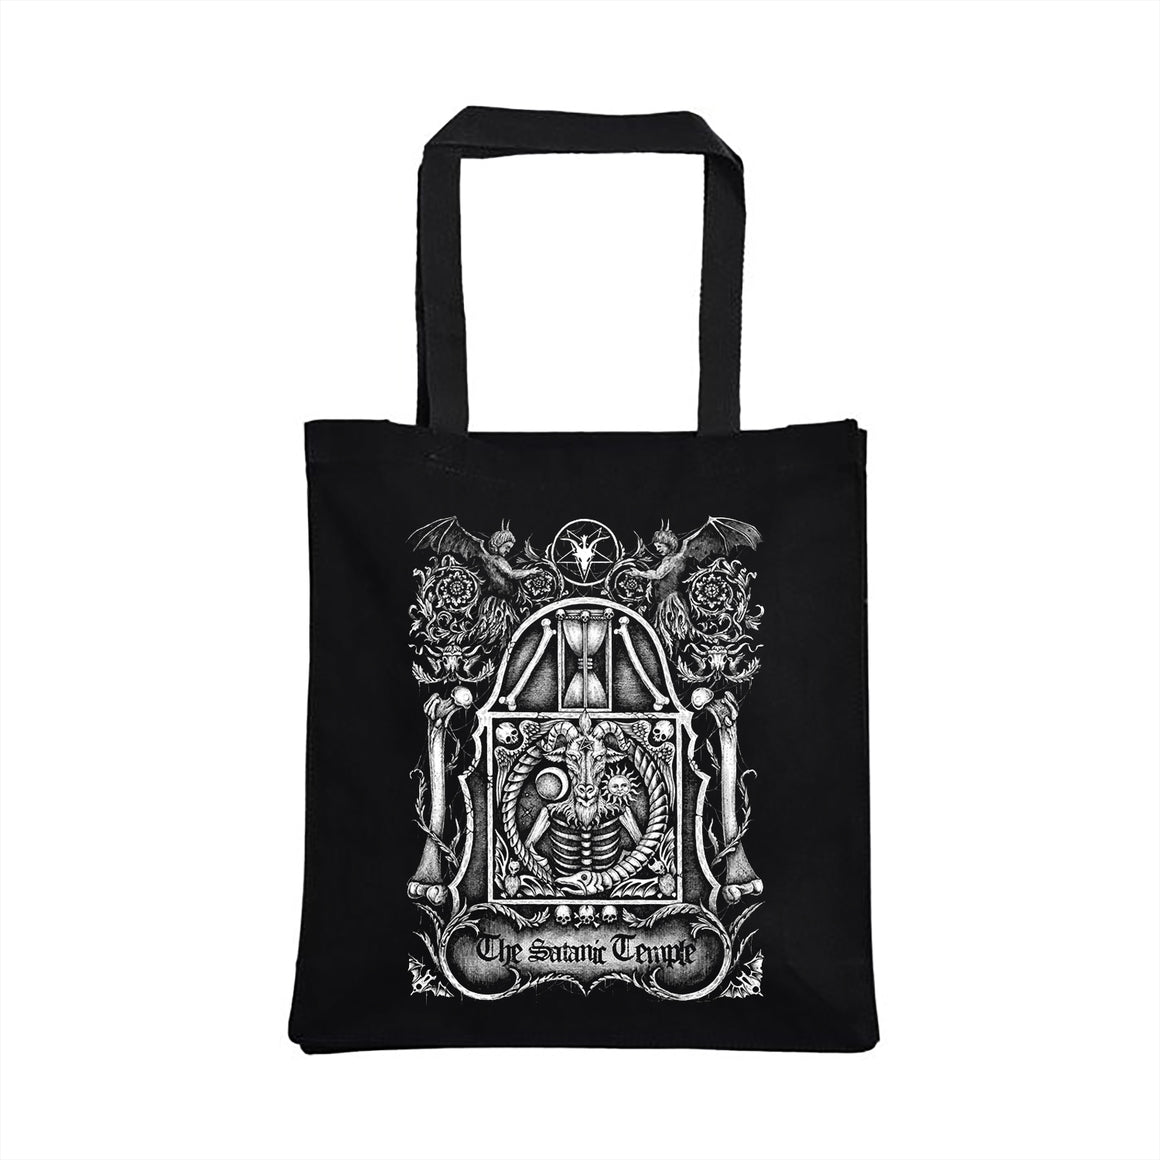 TST Headstone Tote Bag design by Luciana Nedelea